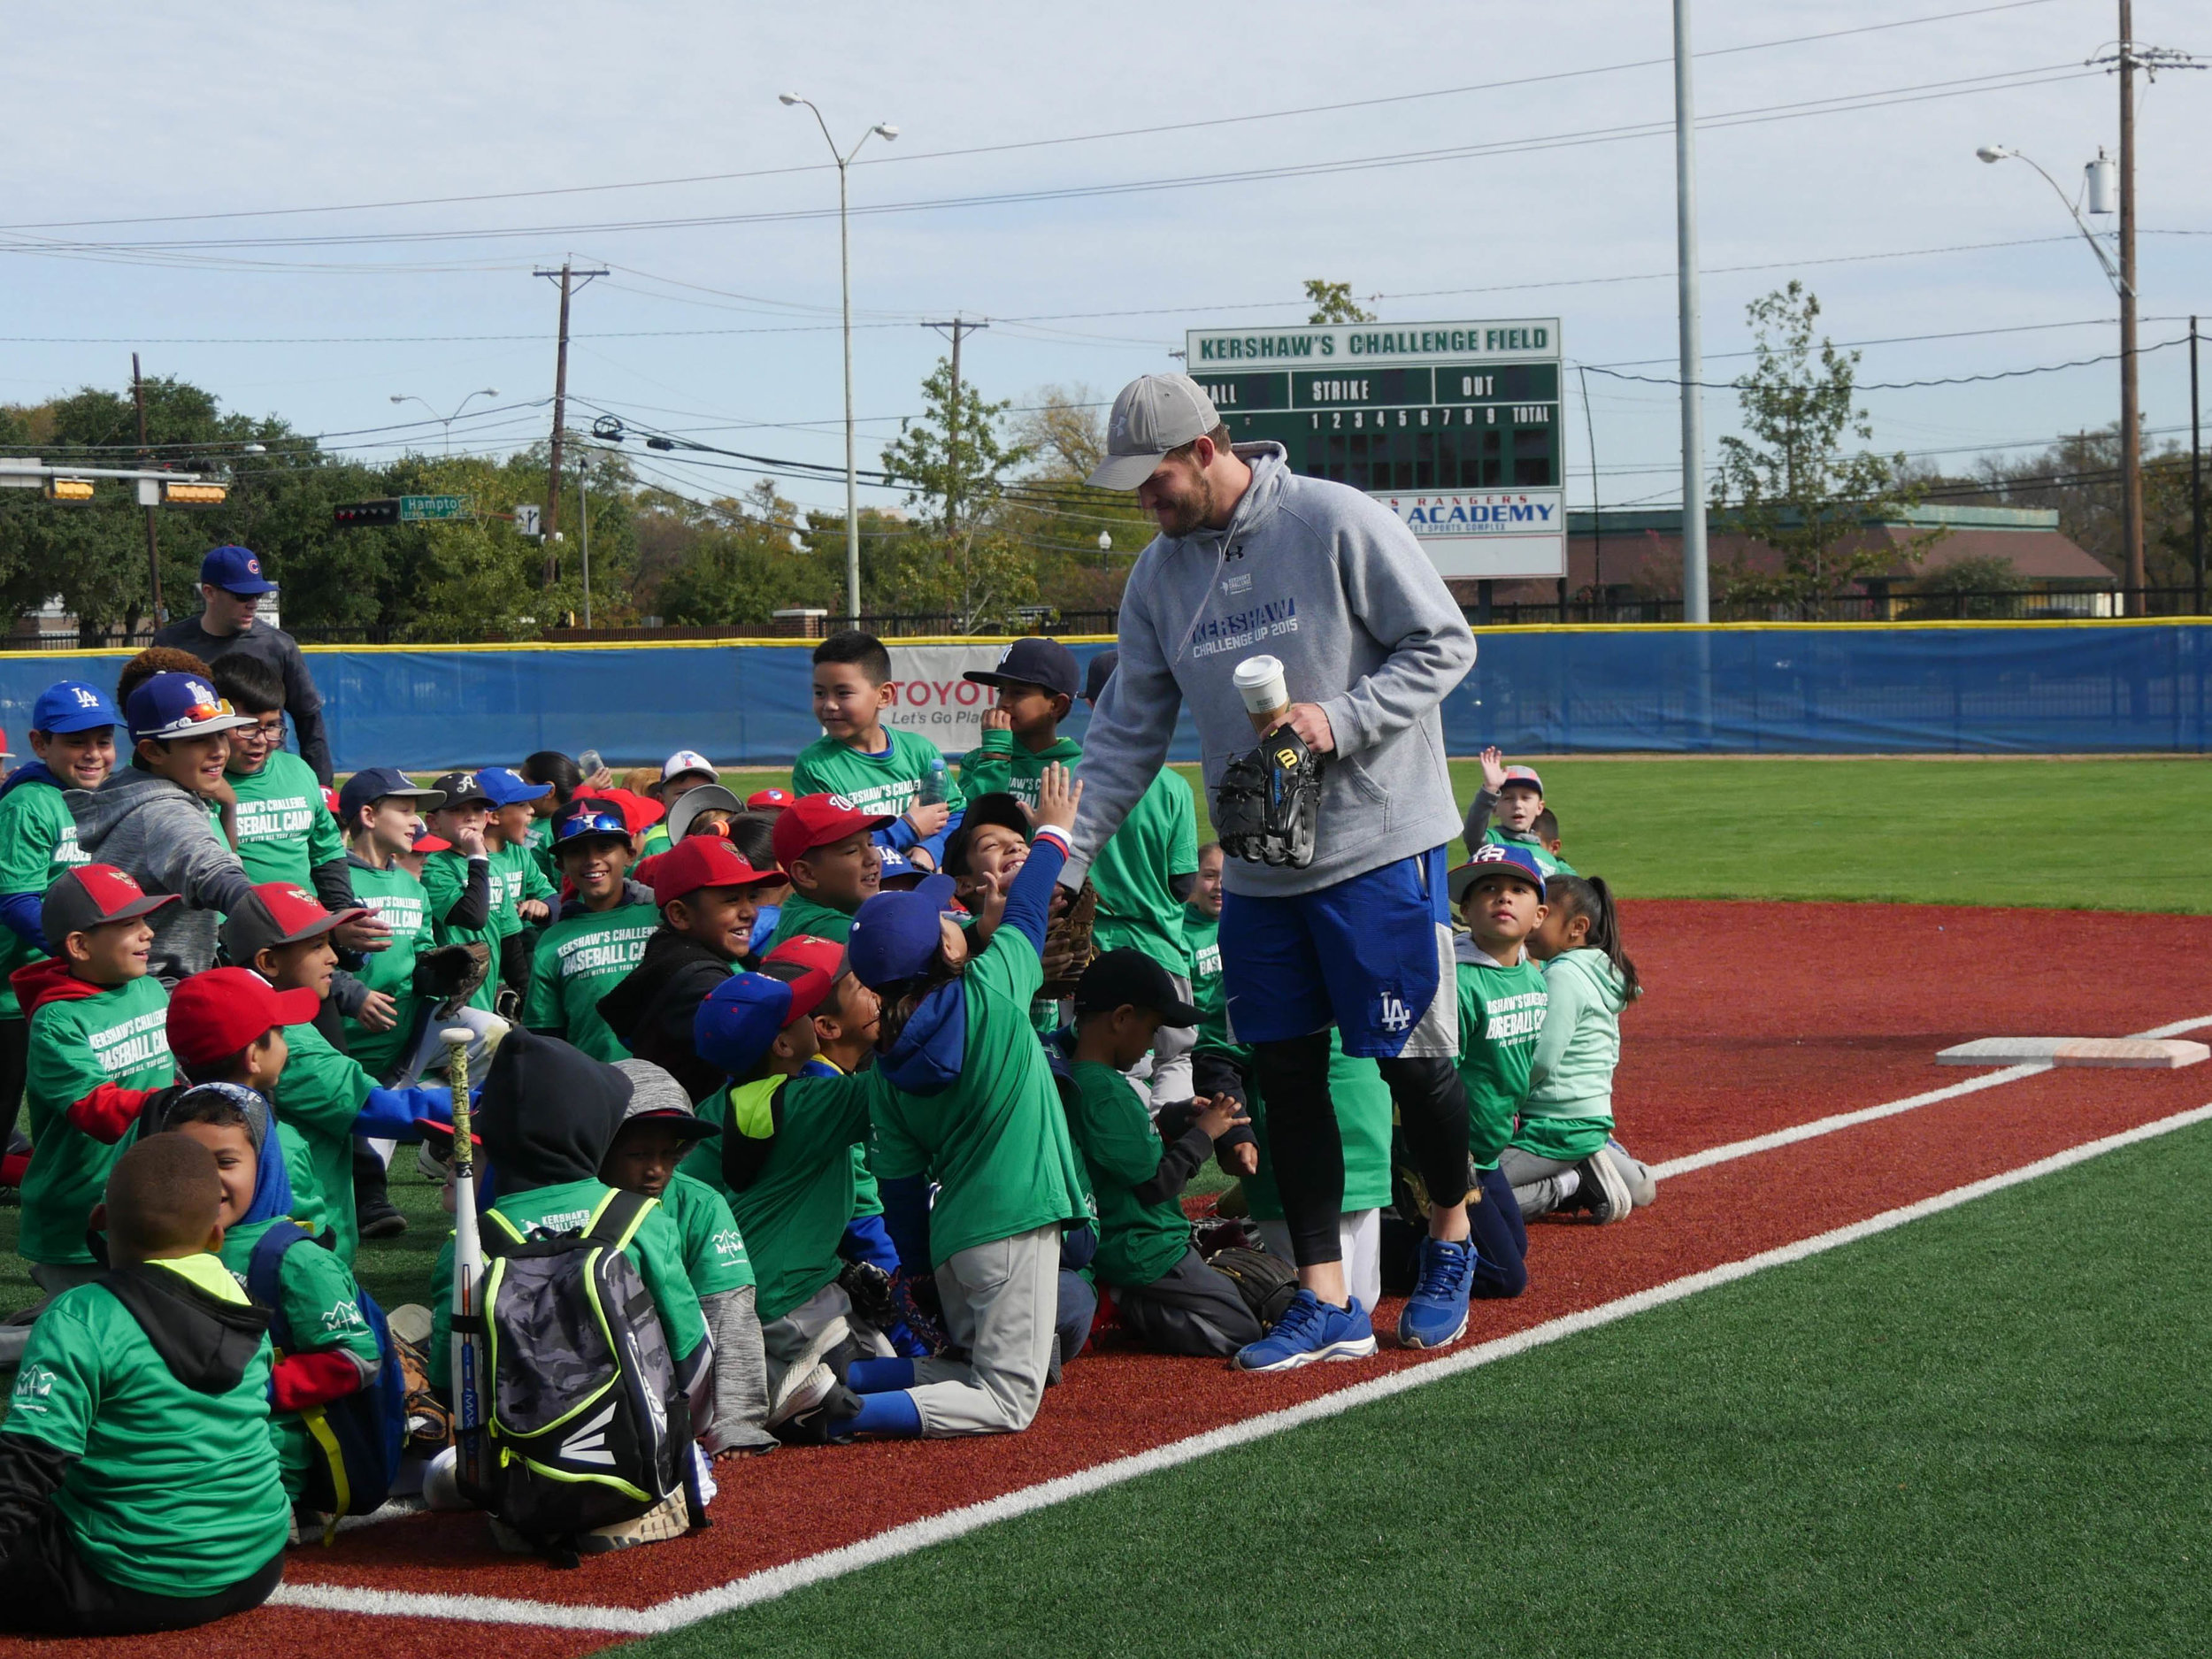 Kershaw greets campers upon his arrival.